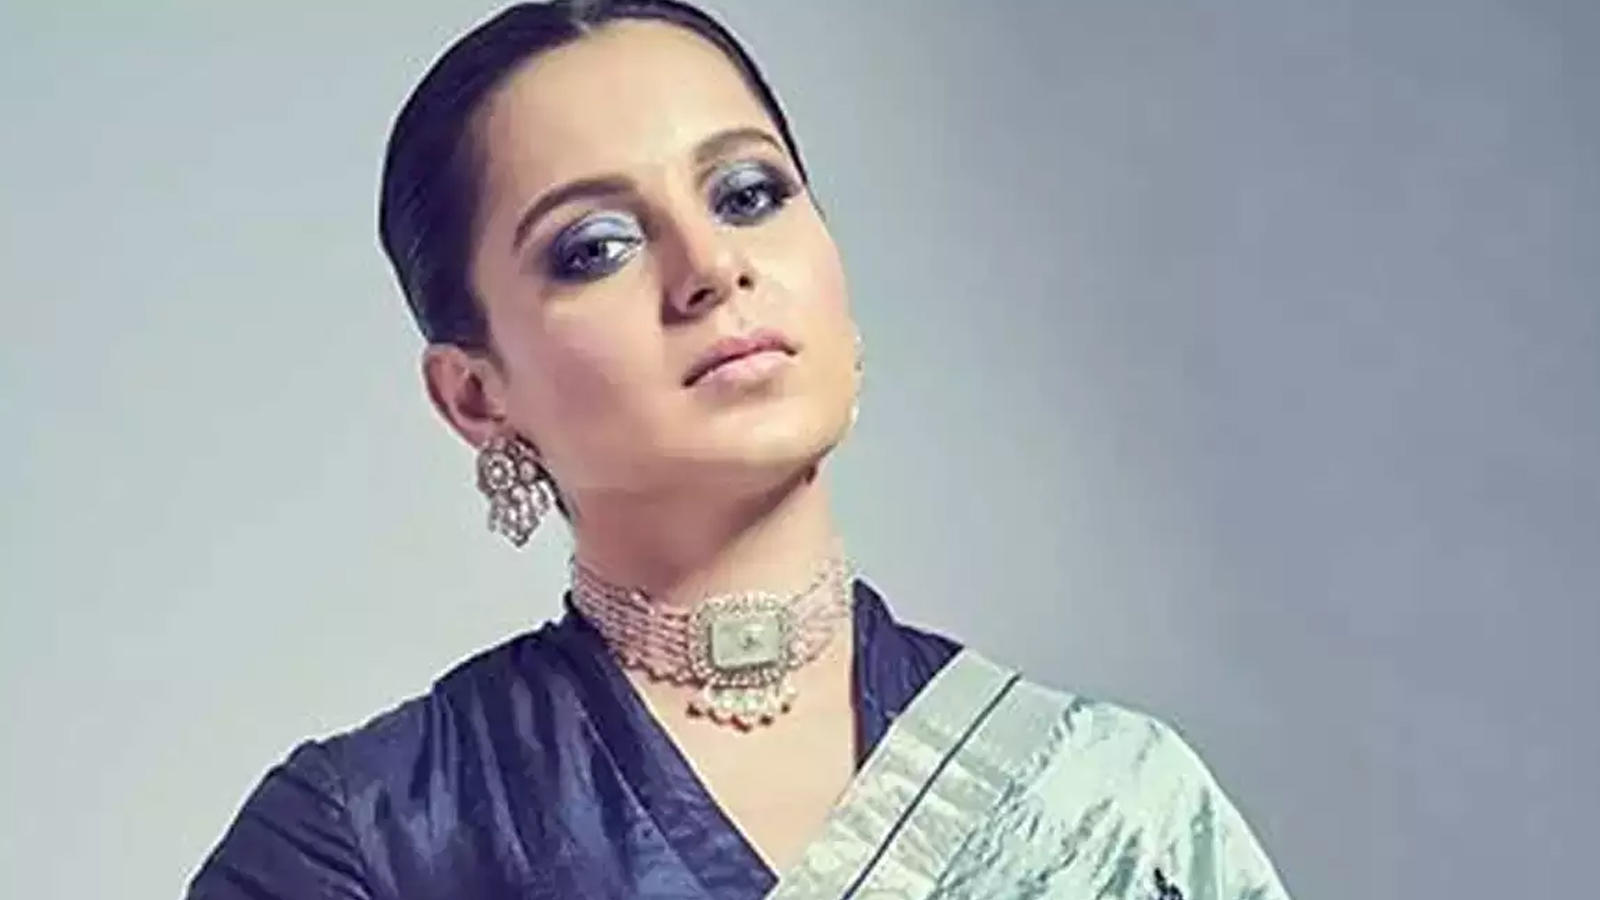 kangana-ranaut-we-need-to-save-bollywood-from-drug-mafia-terrorism-sexism-terrorism-talent-exploitation-terrorism-among-others